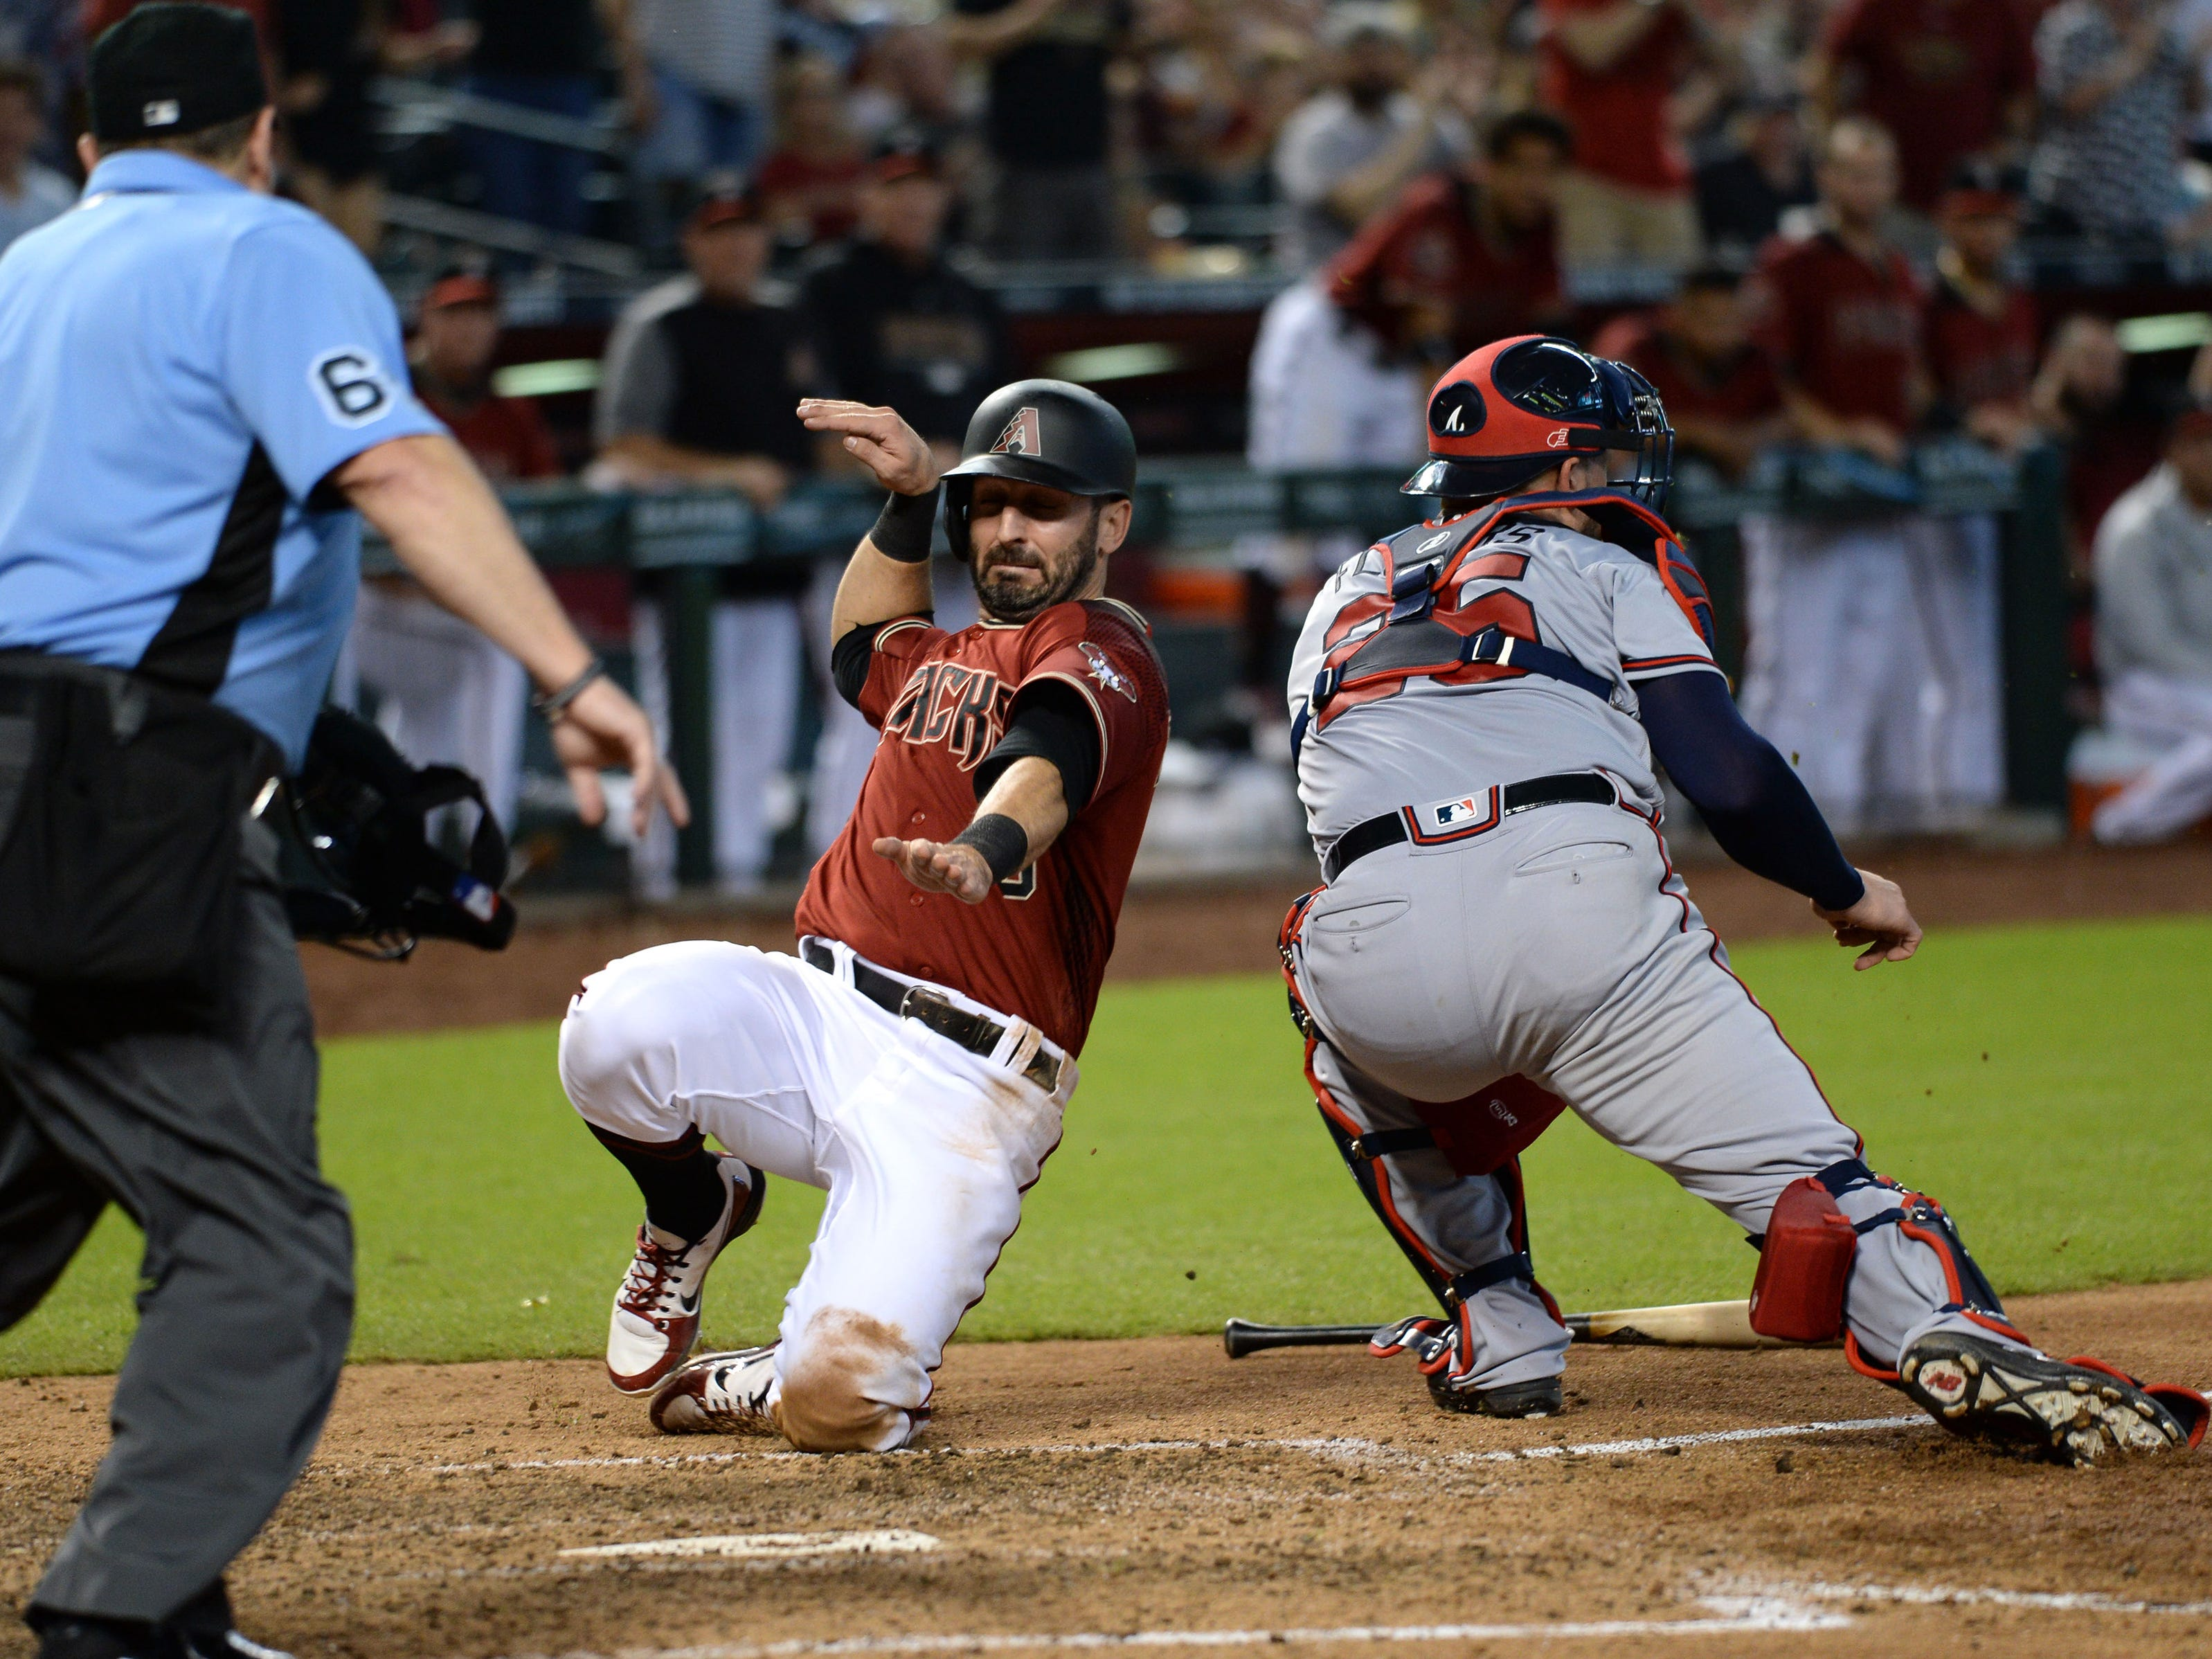 Sep 9, 2018; Phoenix, AZ, USA; Arizona Diamondbacks third baseman Daniel Descalso (3) slides at home plate ahead of the tag of Atlanta Braves catcher Tyler Flowers (25) to score a run during the sixth inning at Chase Field.